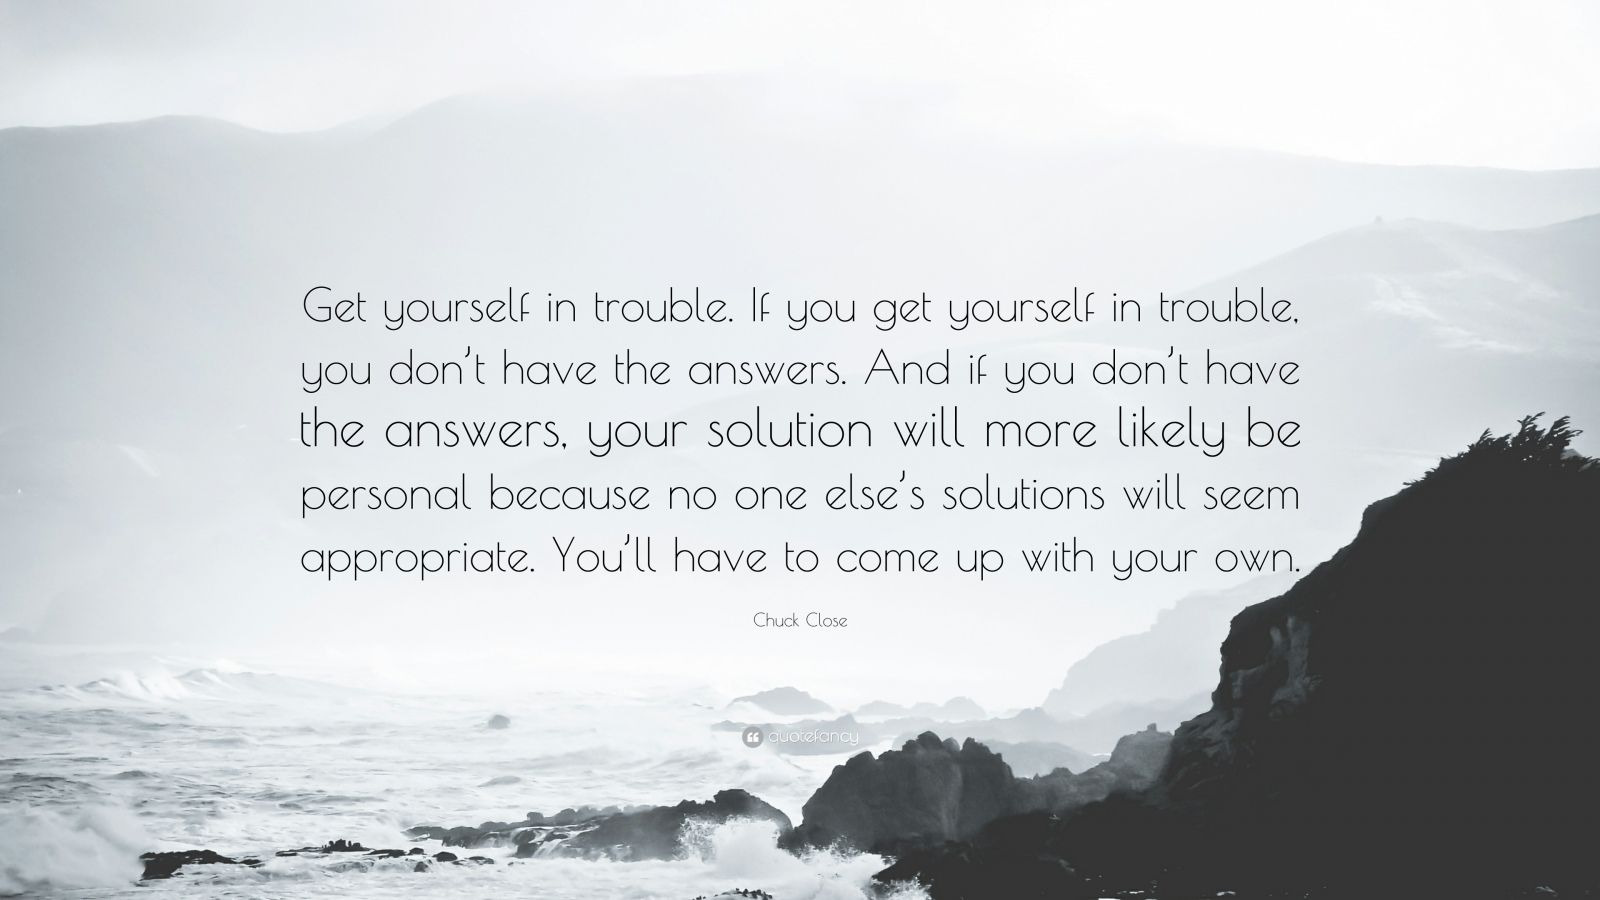 """Chuck Close Quote: """"Get yourself in trouble. If you get yourself in trouble, you don't have the answers. And if you don't have the answers, your solution will more likely be personal because no one else's solutions will seem appropriate. You'll have to come up with your own."""""""